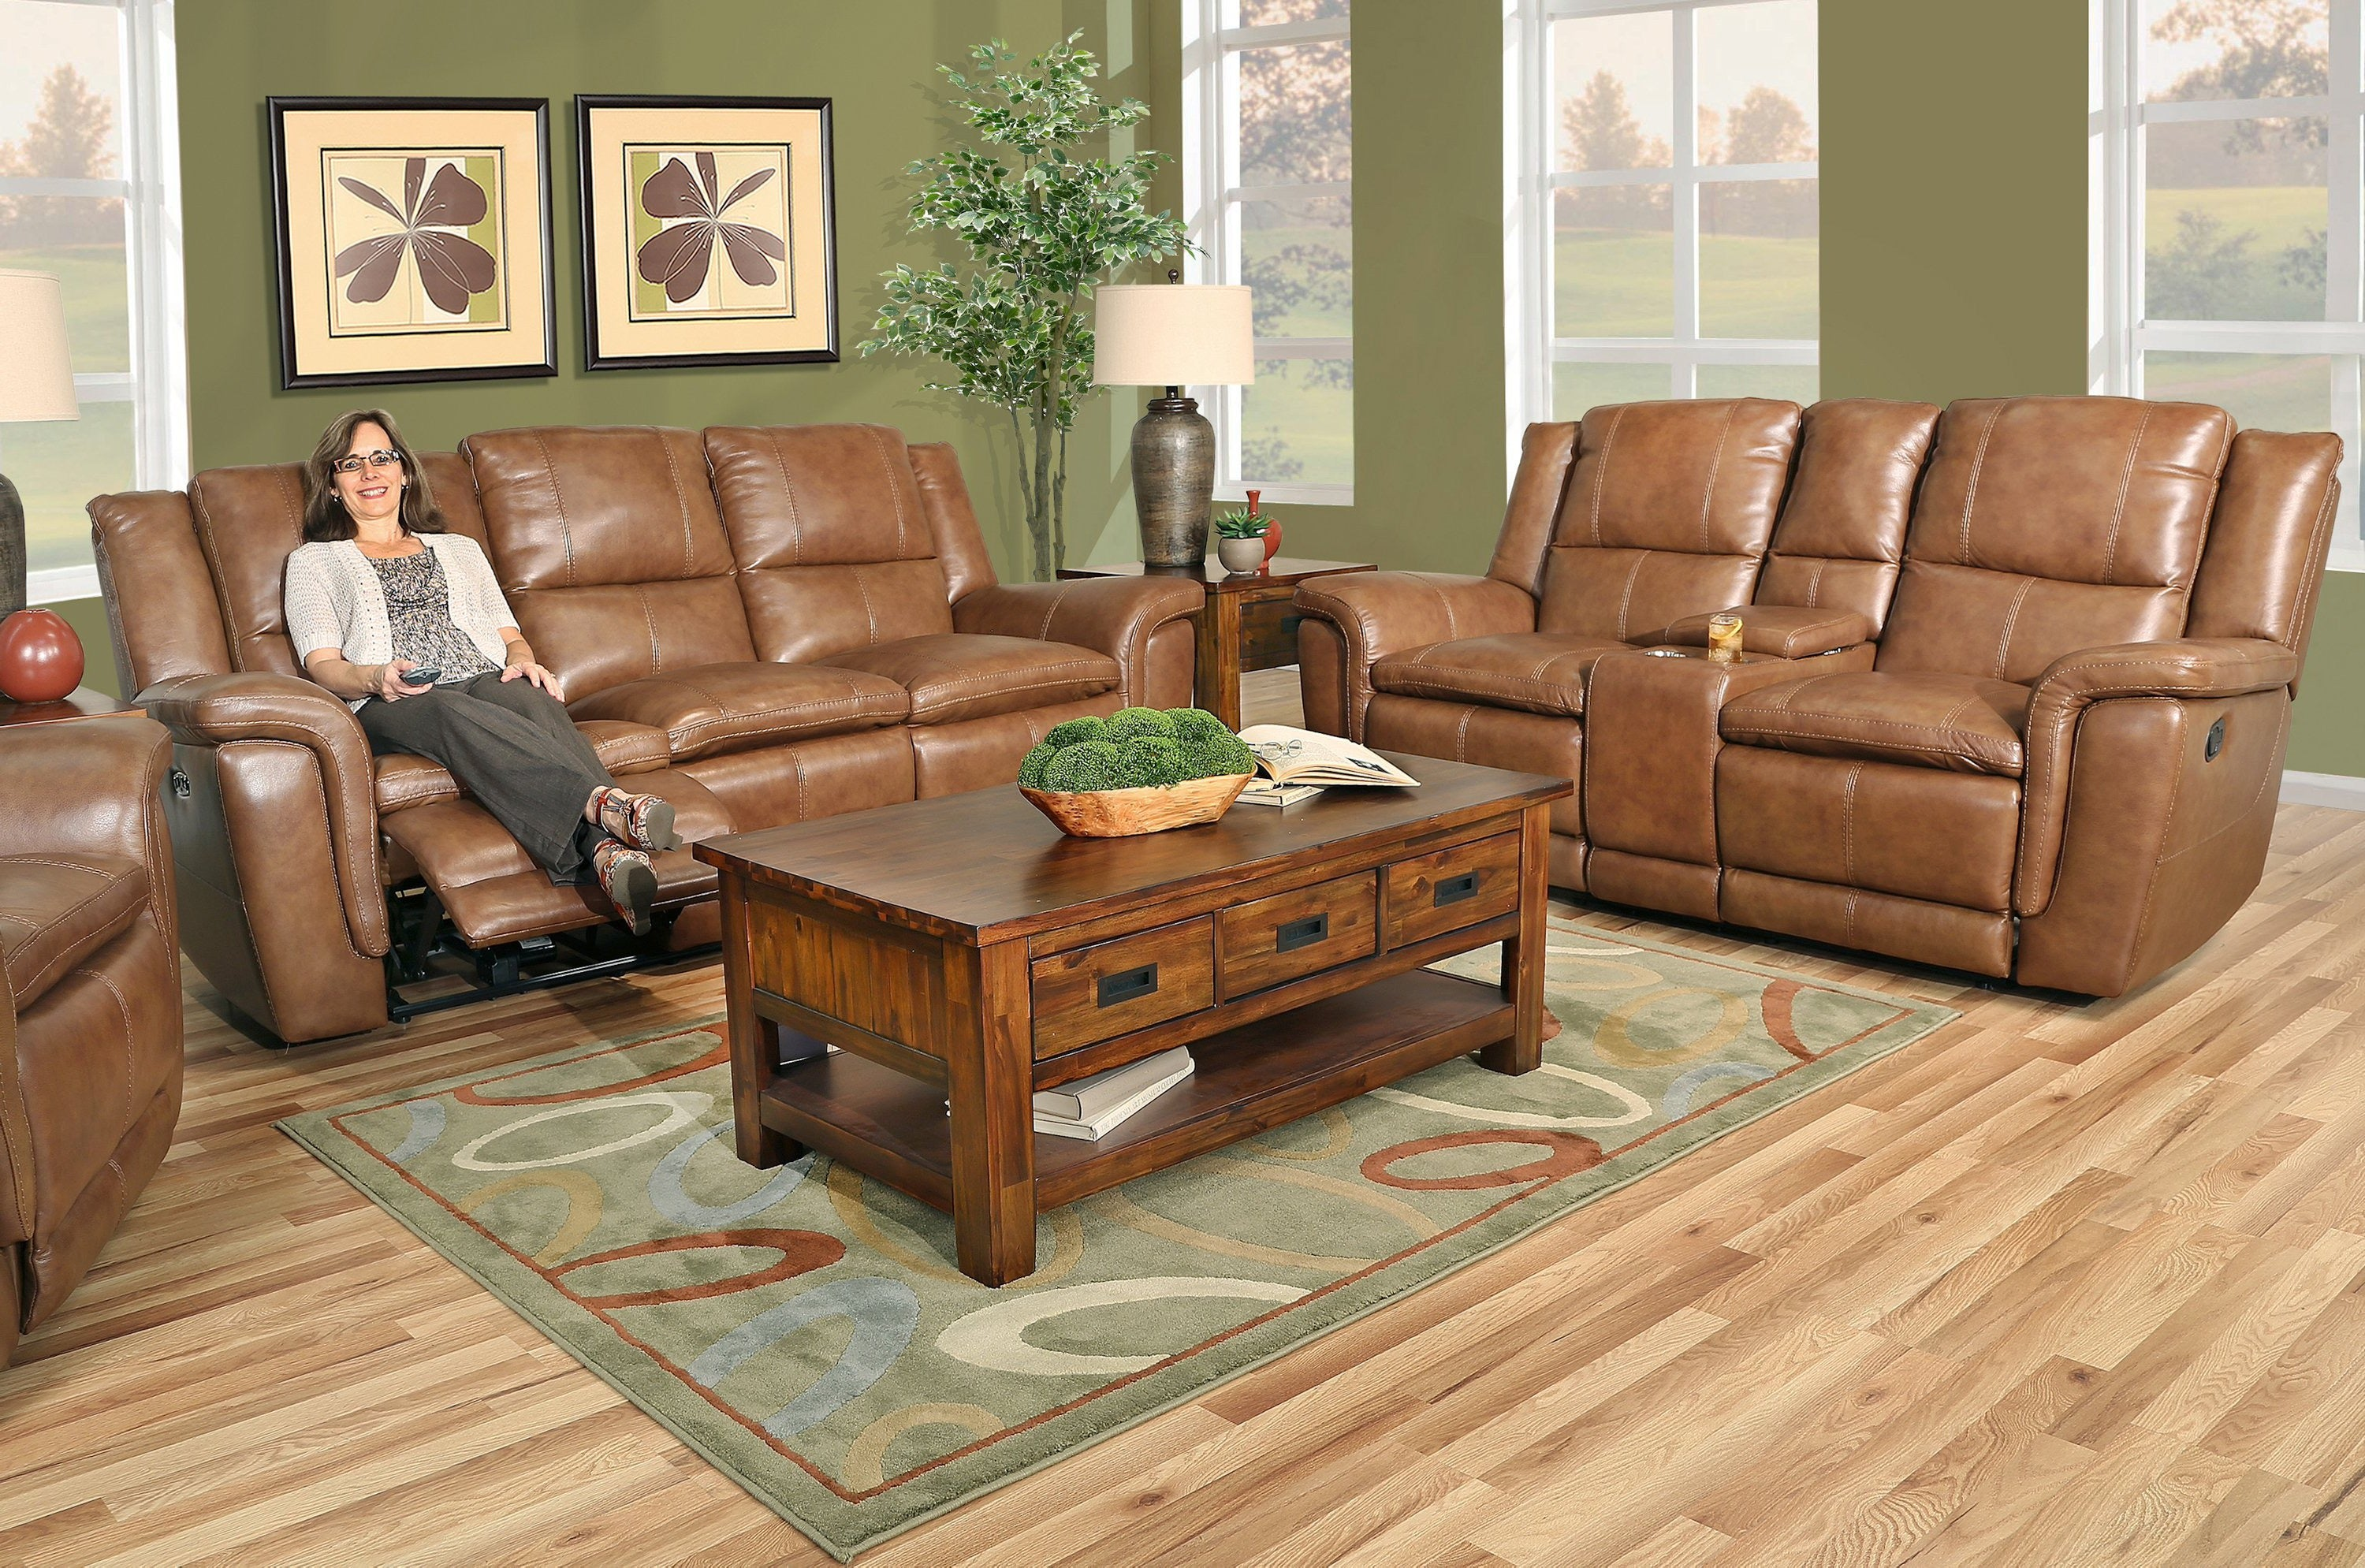 Spartan 9 Piece Leather Reclining Living Room